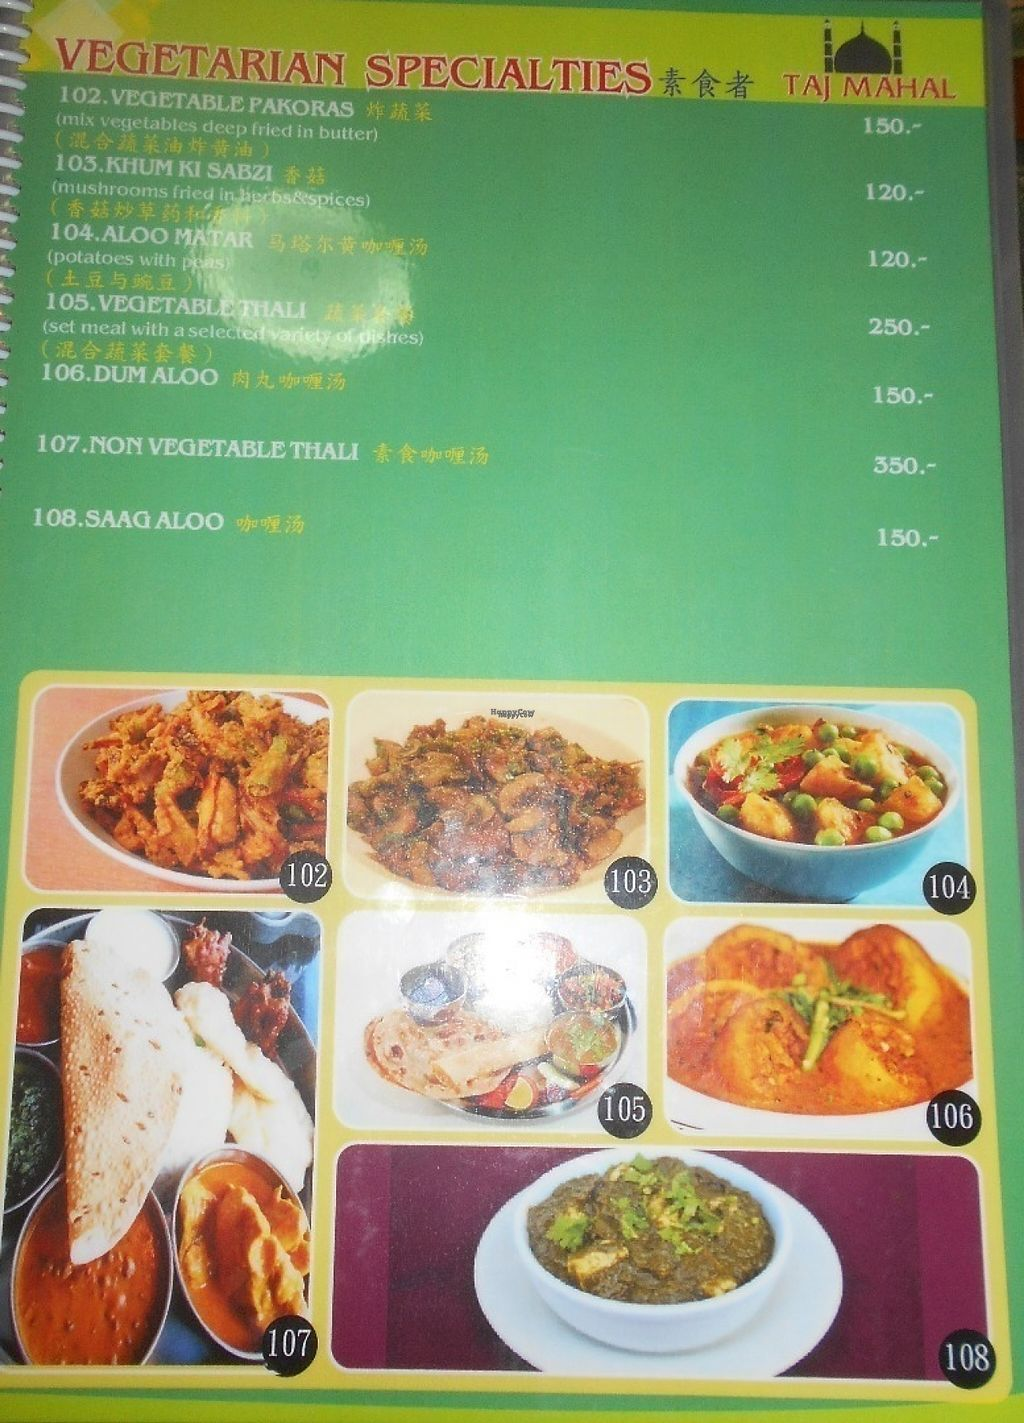 """Photo of Kashmir Indian Restaurant  by <a href=""""/members/profile/Kelly%20Kelly"""">Kelly Kelly</a> <br/>Kashmir Indian Restaurant <br/> August 5, 2016  - <a href='/contact/abuse/image/77951/165819'>Report</a>"""